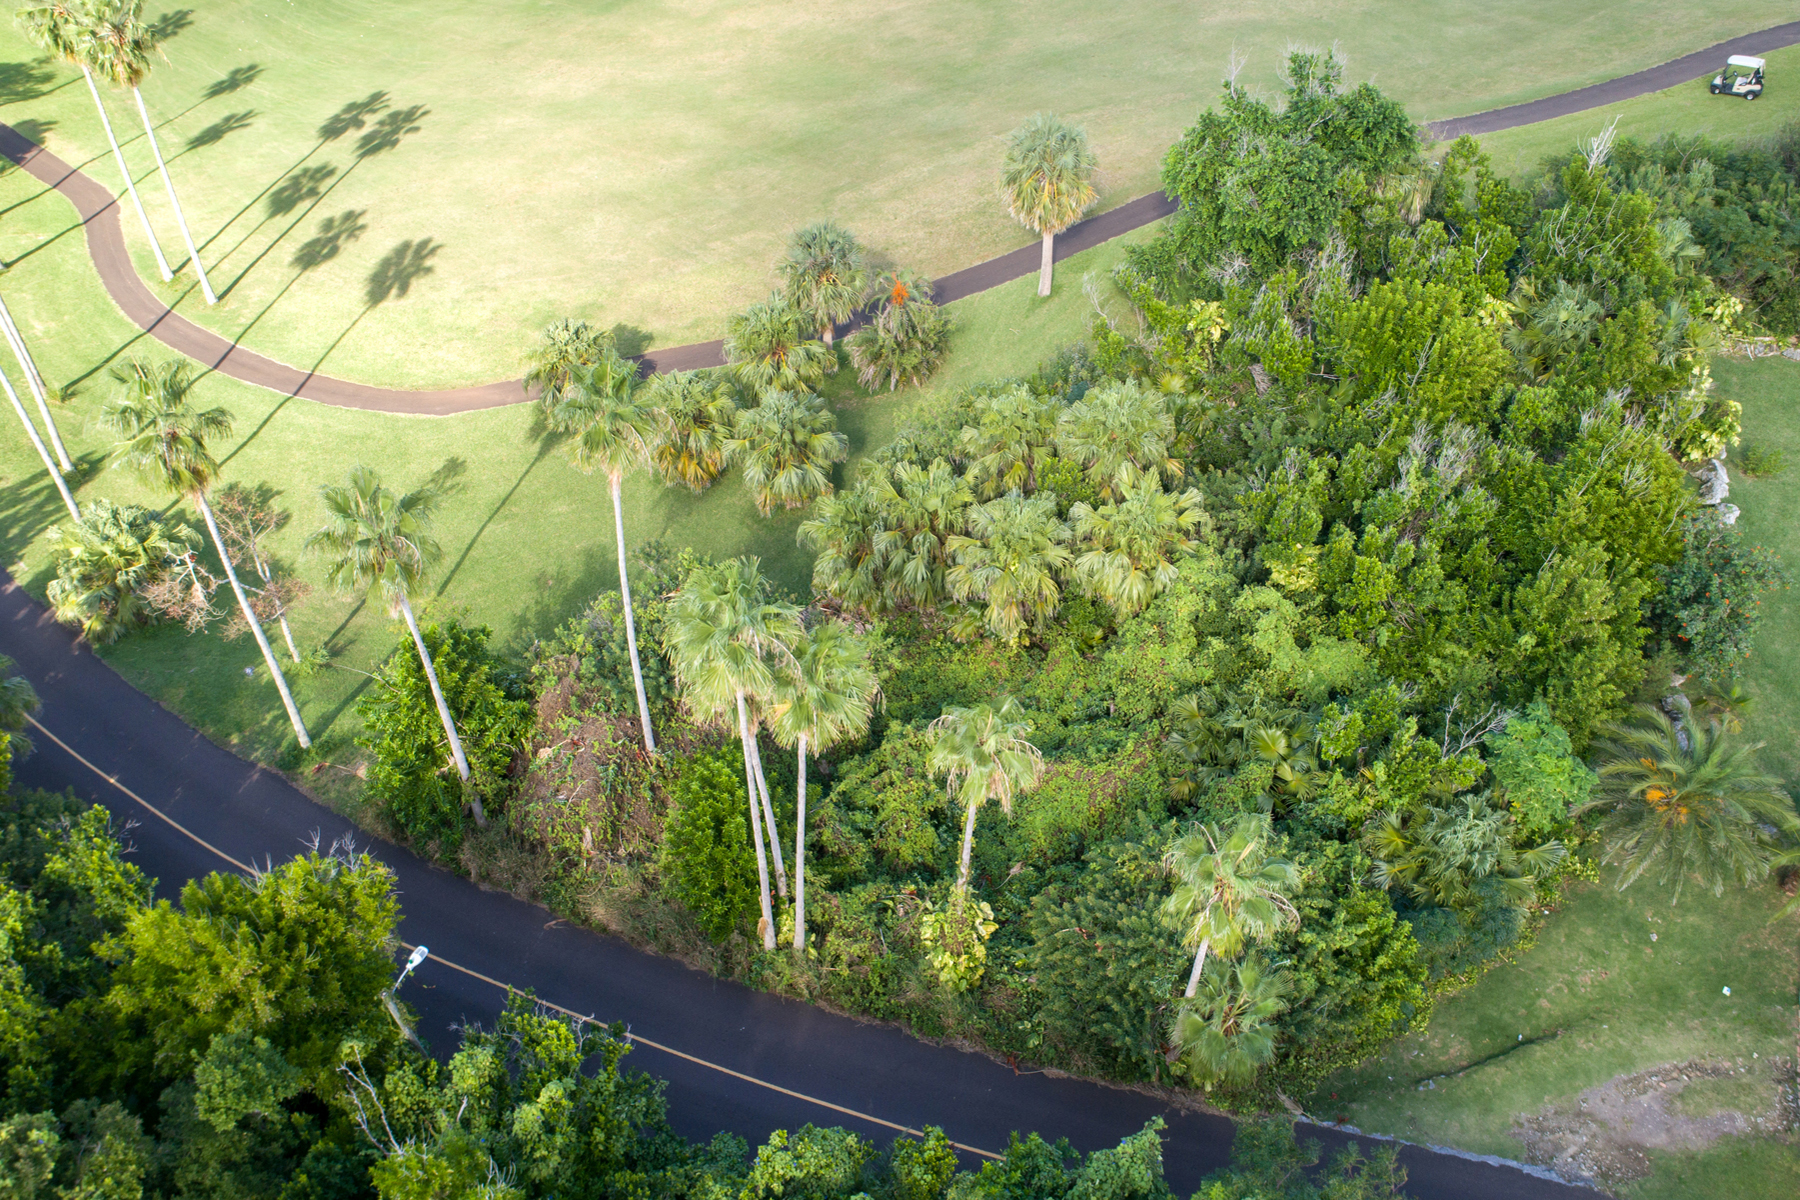 Land for Sale at Paynters Road Site 3 Paynters Road St Georges Parish, Bermuda HS02 Bermuda